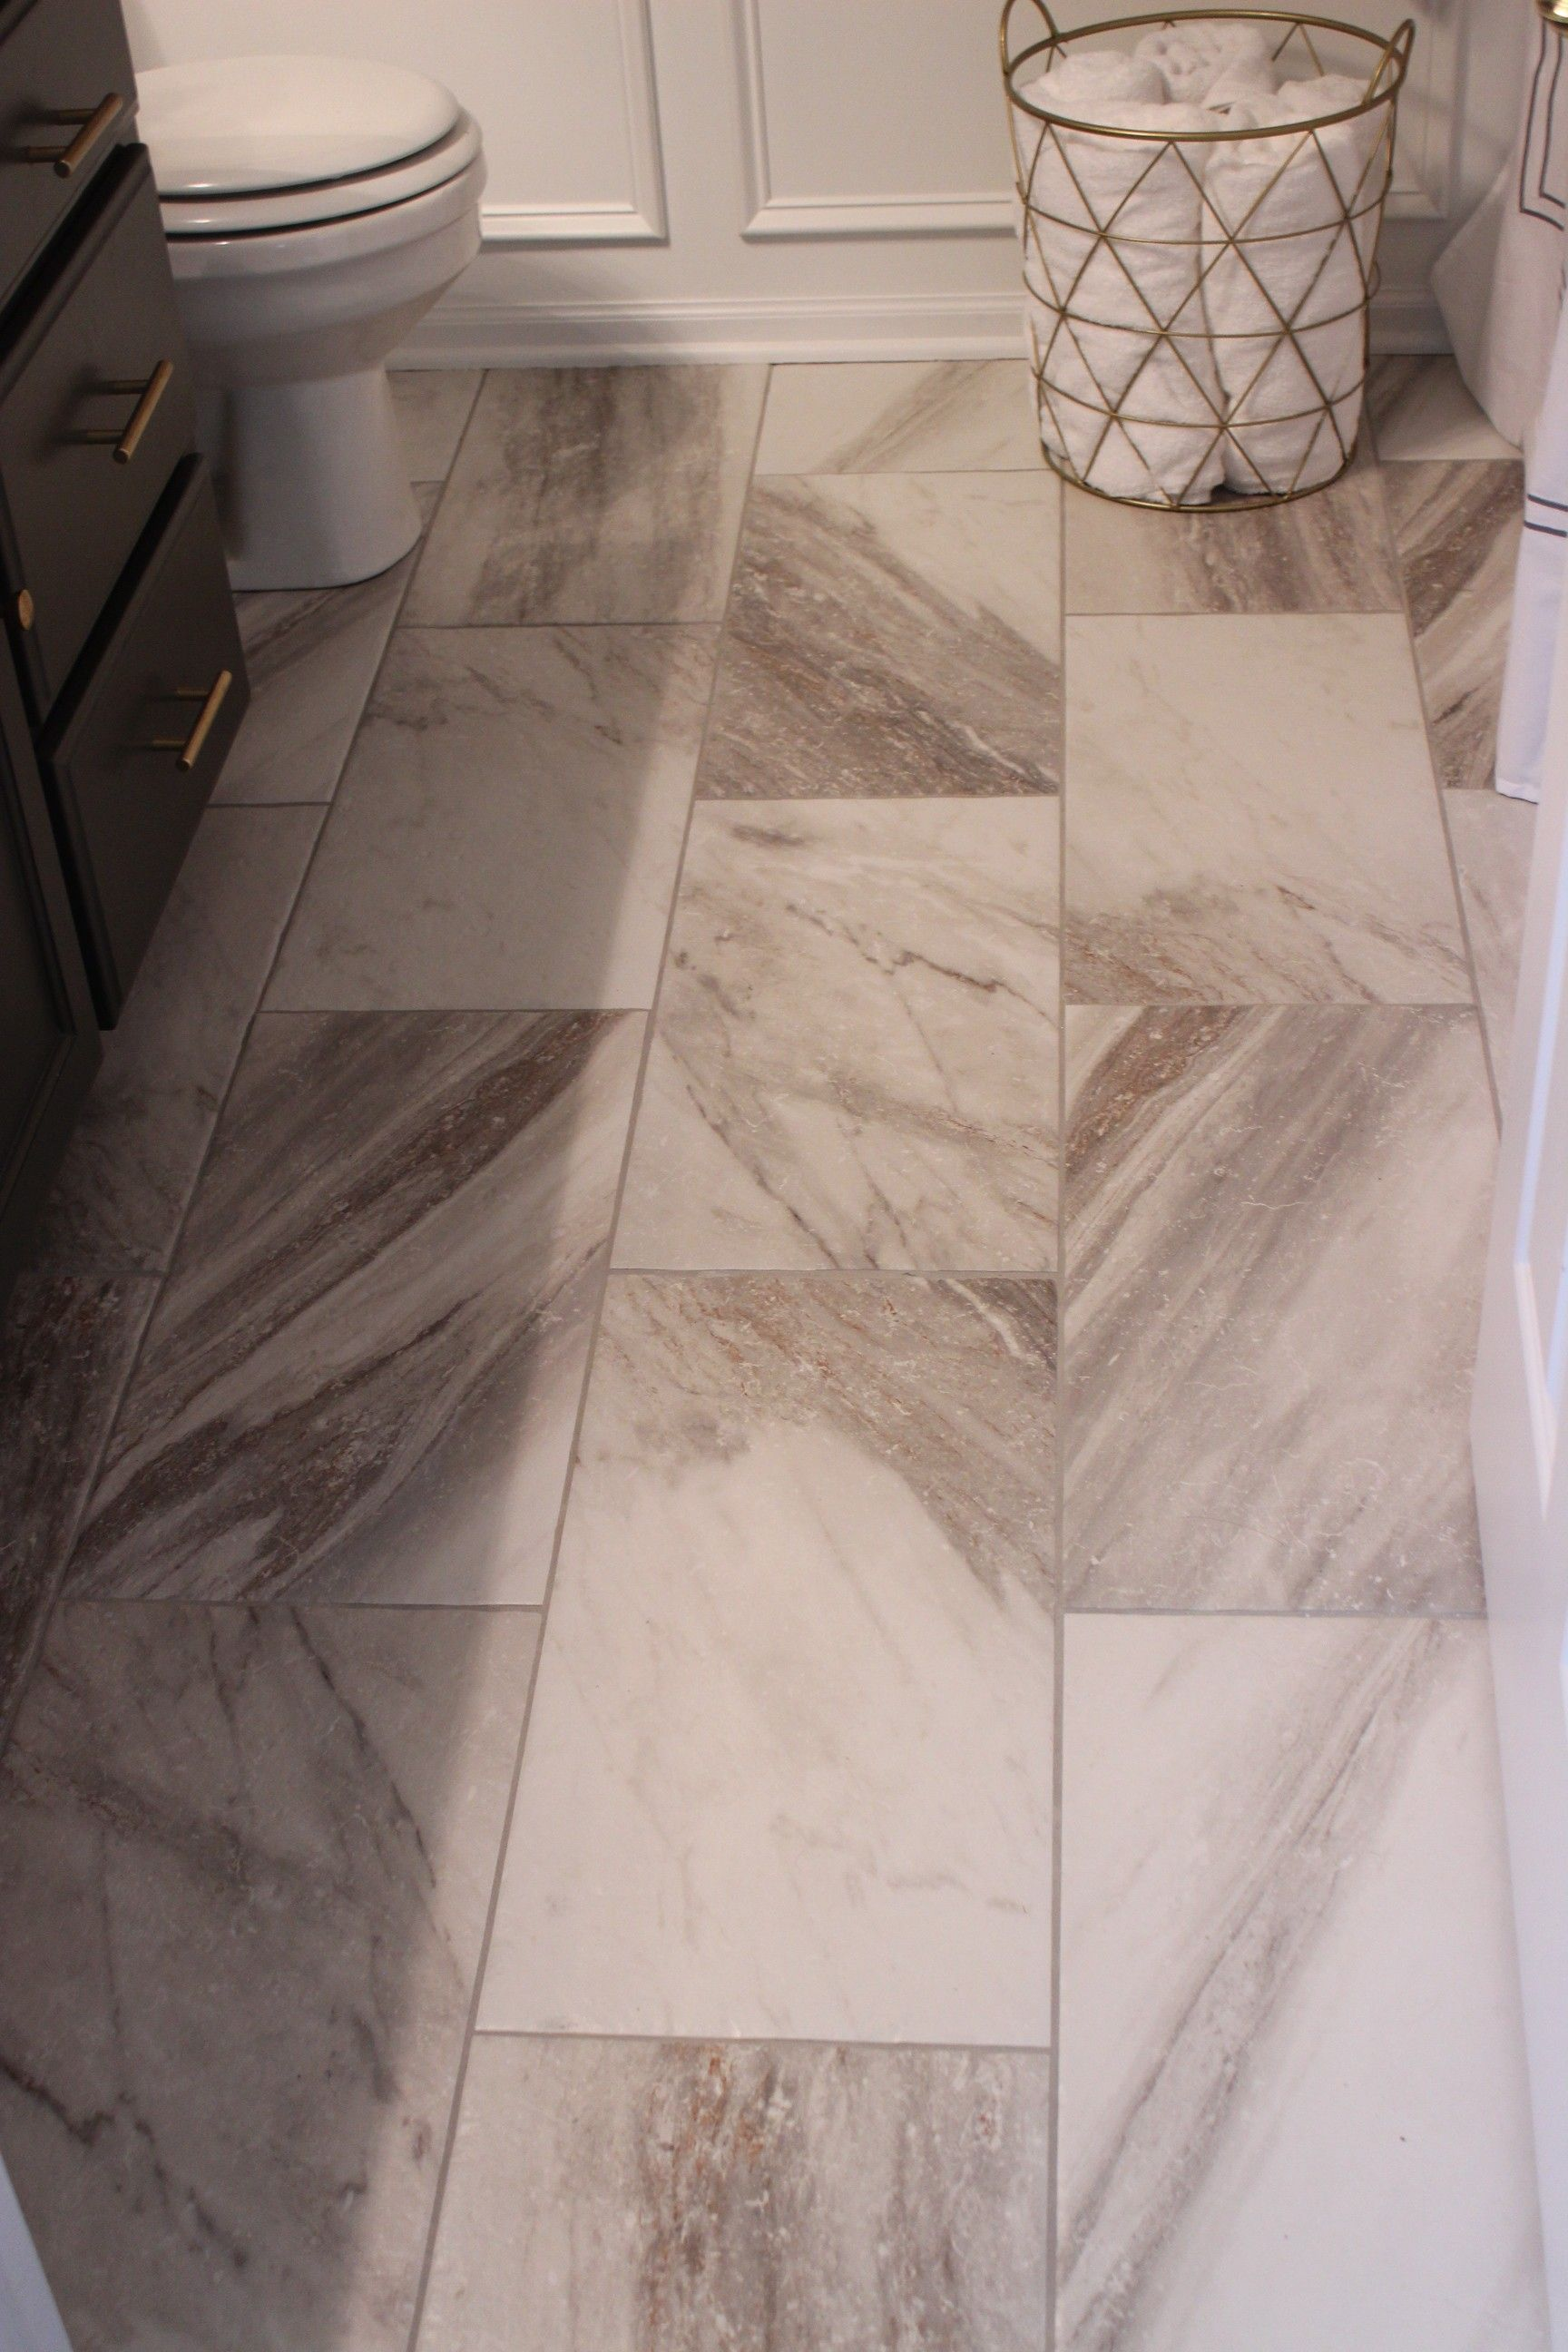 Sovereign stone pearl porcelain tile in 12 x 24 at Lowes    Bathroom     Sovereign stone pearl porcelain tile in 12 x 24 at Lowes